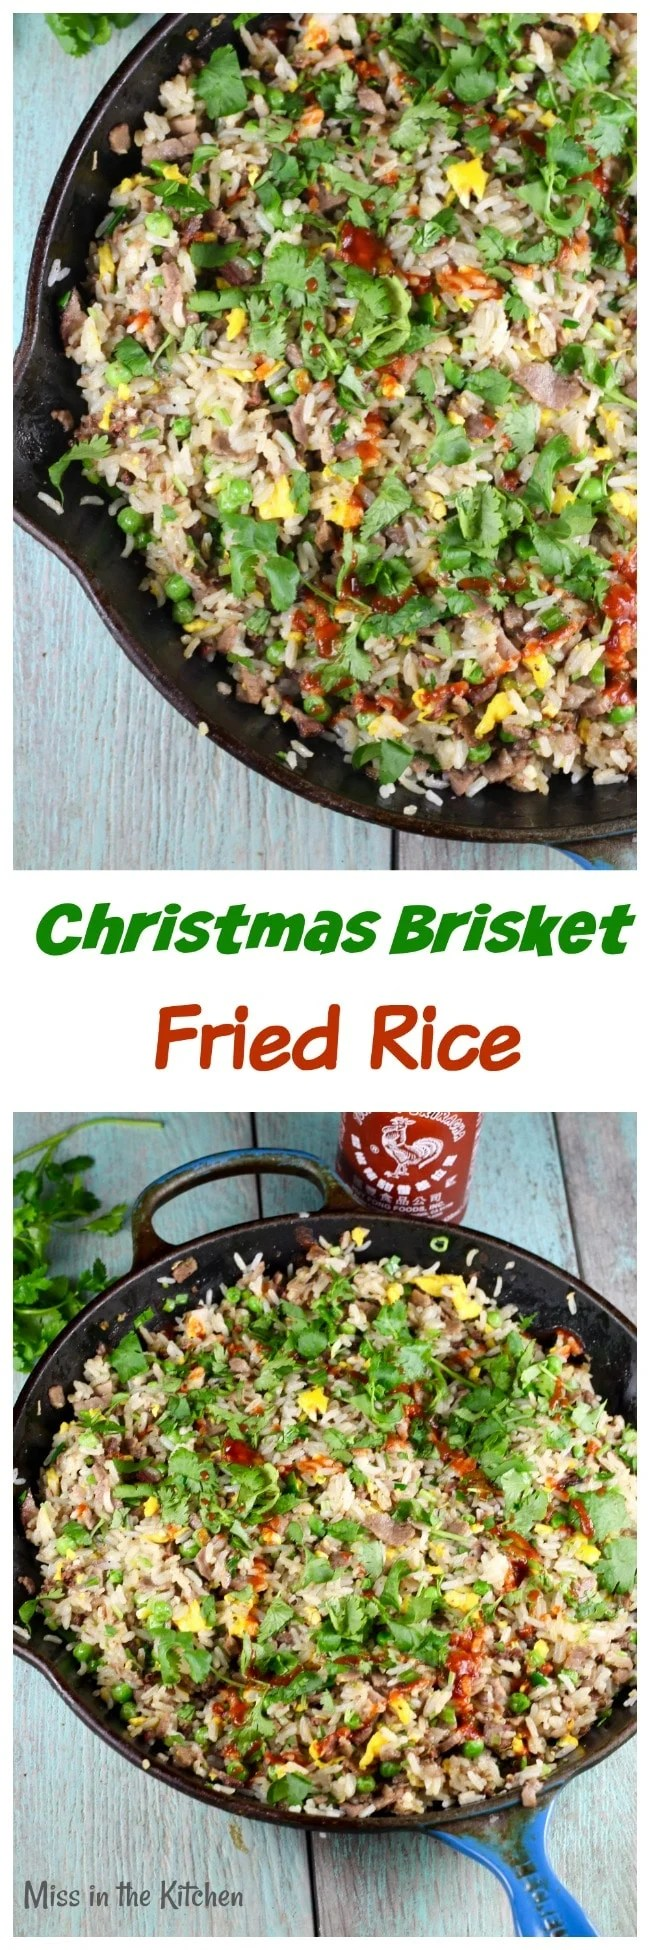 Christmas Brisket Fried Rice Recipe from Bringing it Home by Gale Simmons ~ MissintheKitchen.com #brisket #friedrice